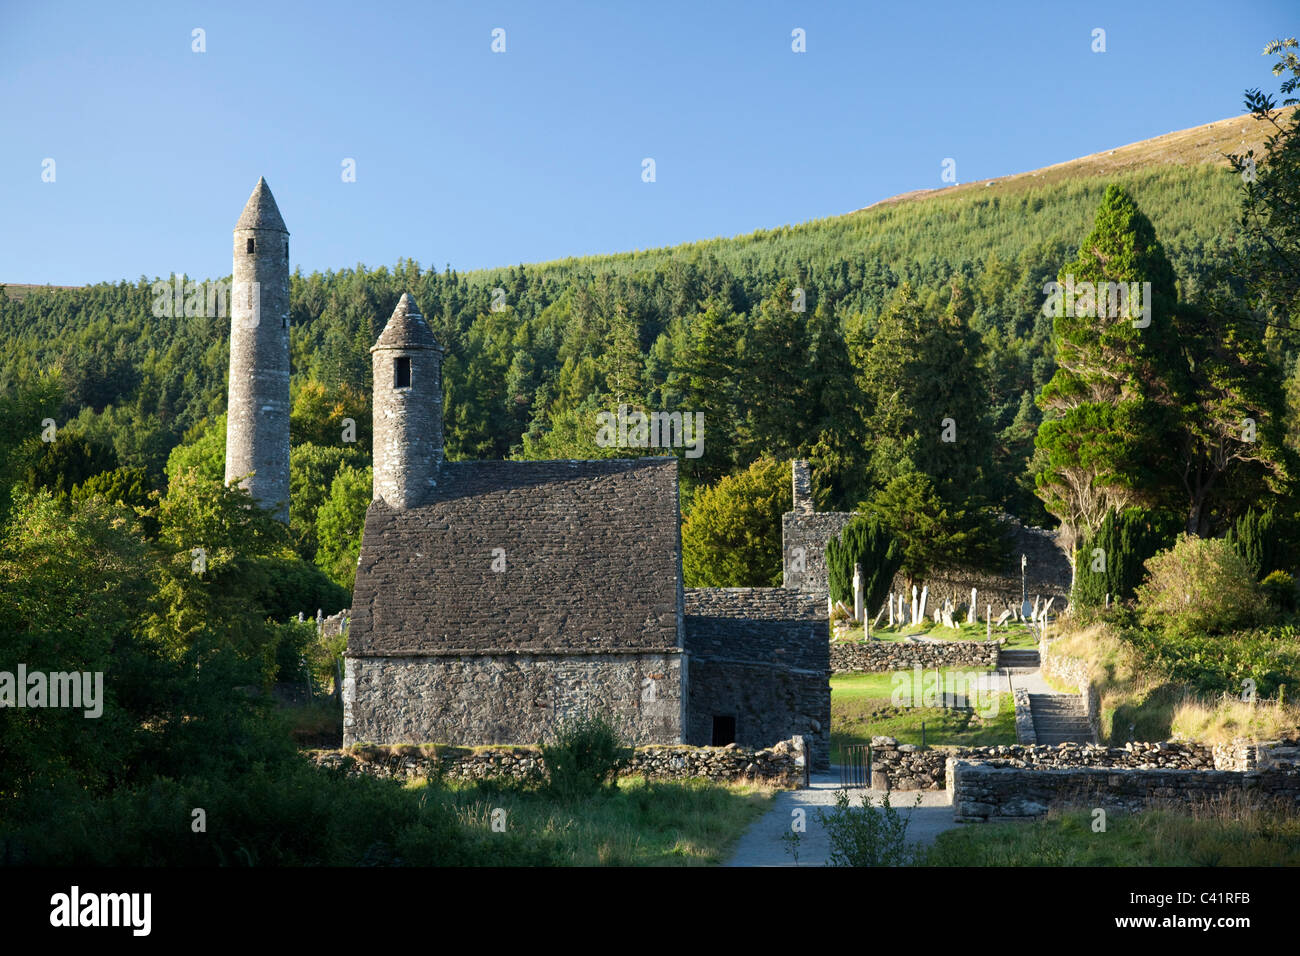 St Kevin's church and round tower, Glendalough monastic site, County Wicklow, Ireland. - Stock Image